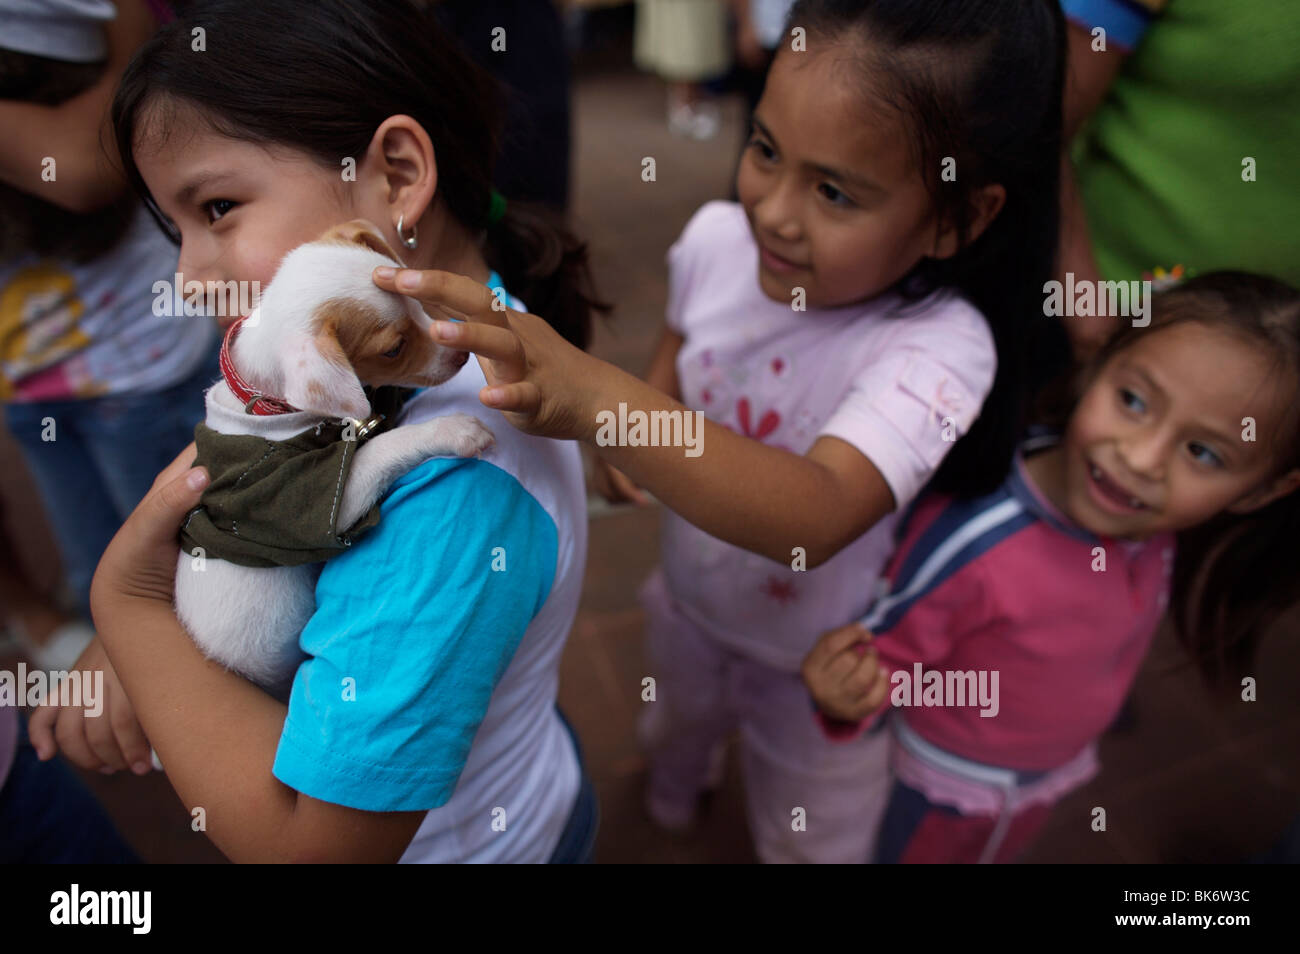 Girls play with a puppy during the Blessing of the Animals celebration in Oaxaca, Mexico - Stock Image